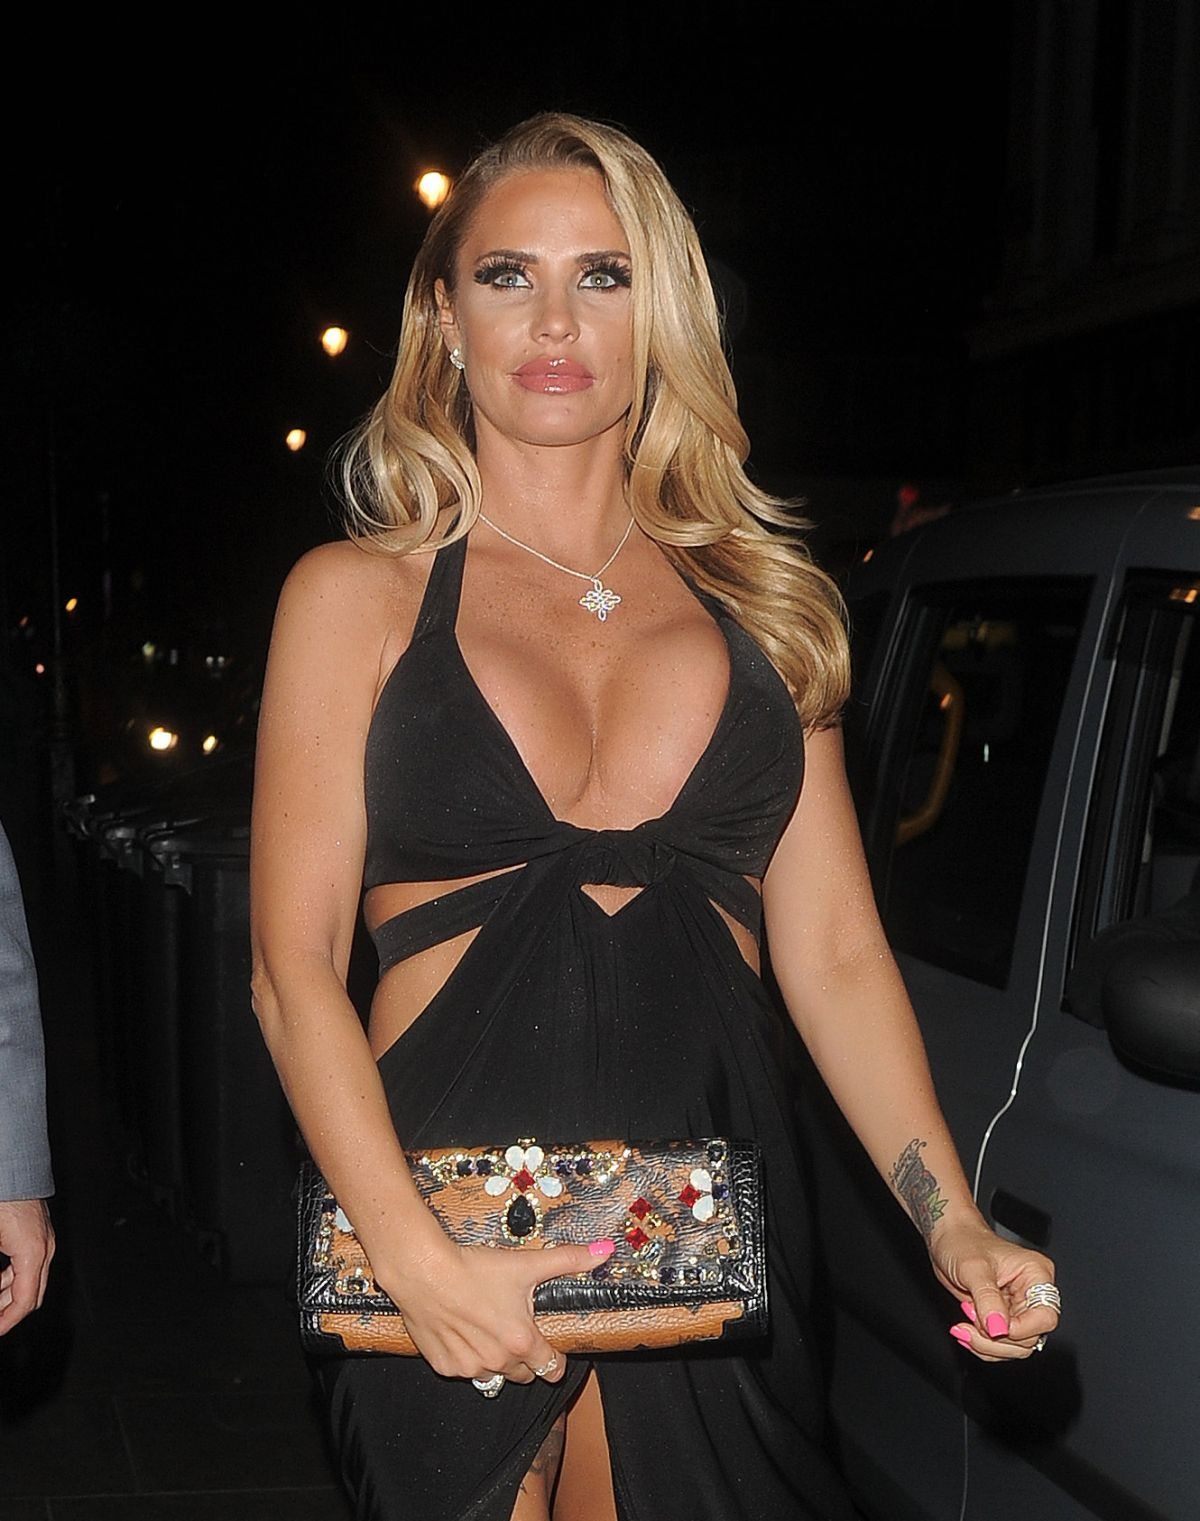 katie price - photo #39